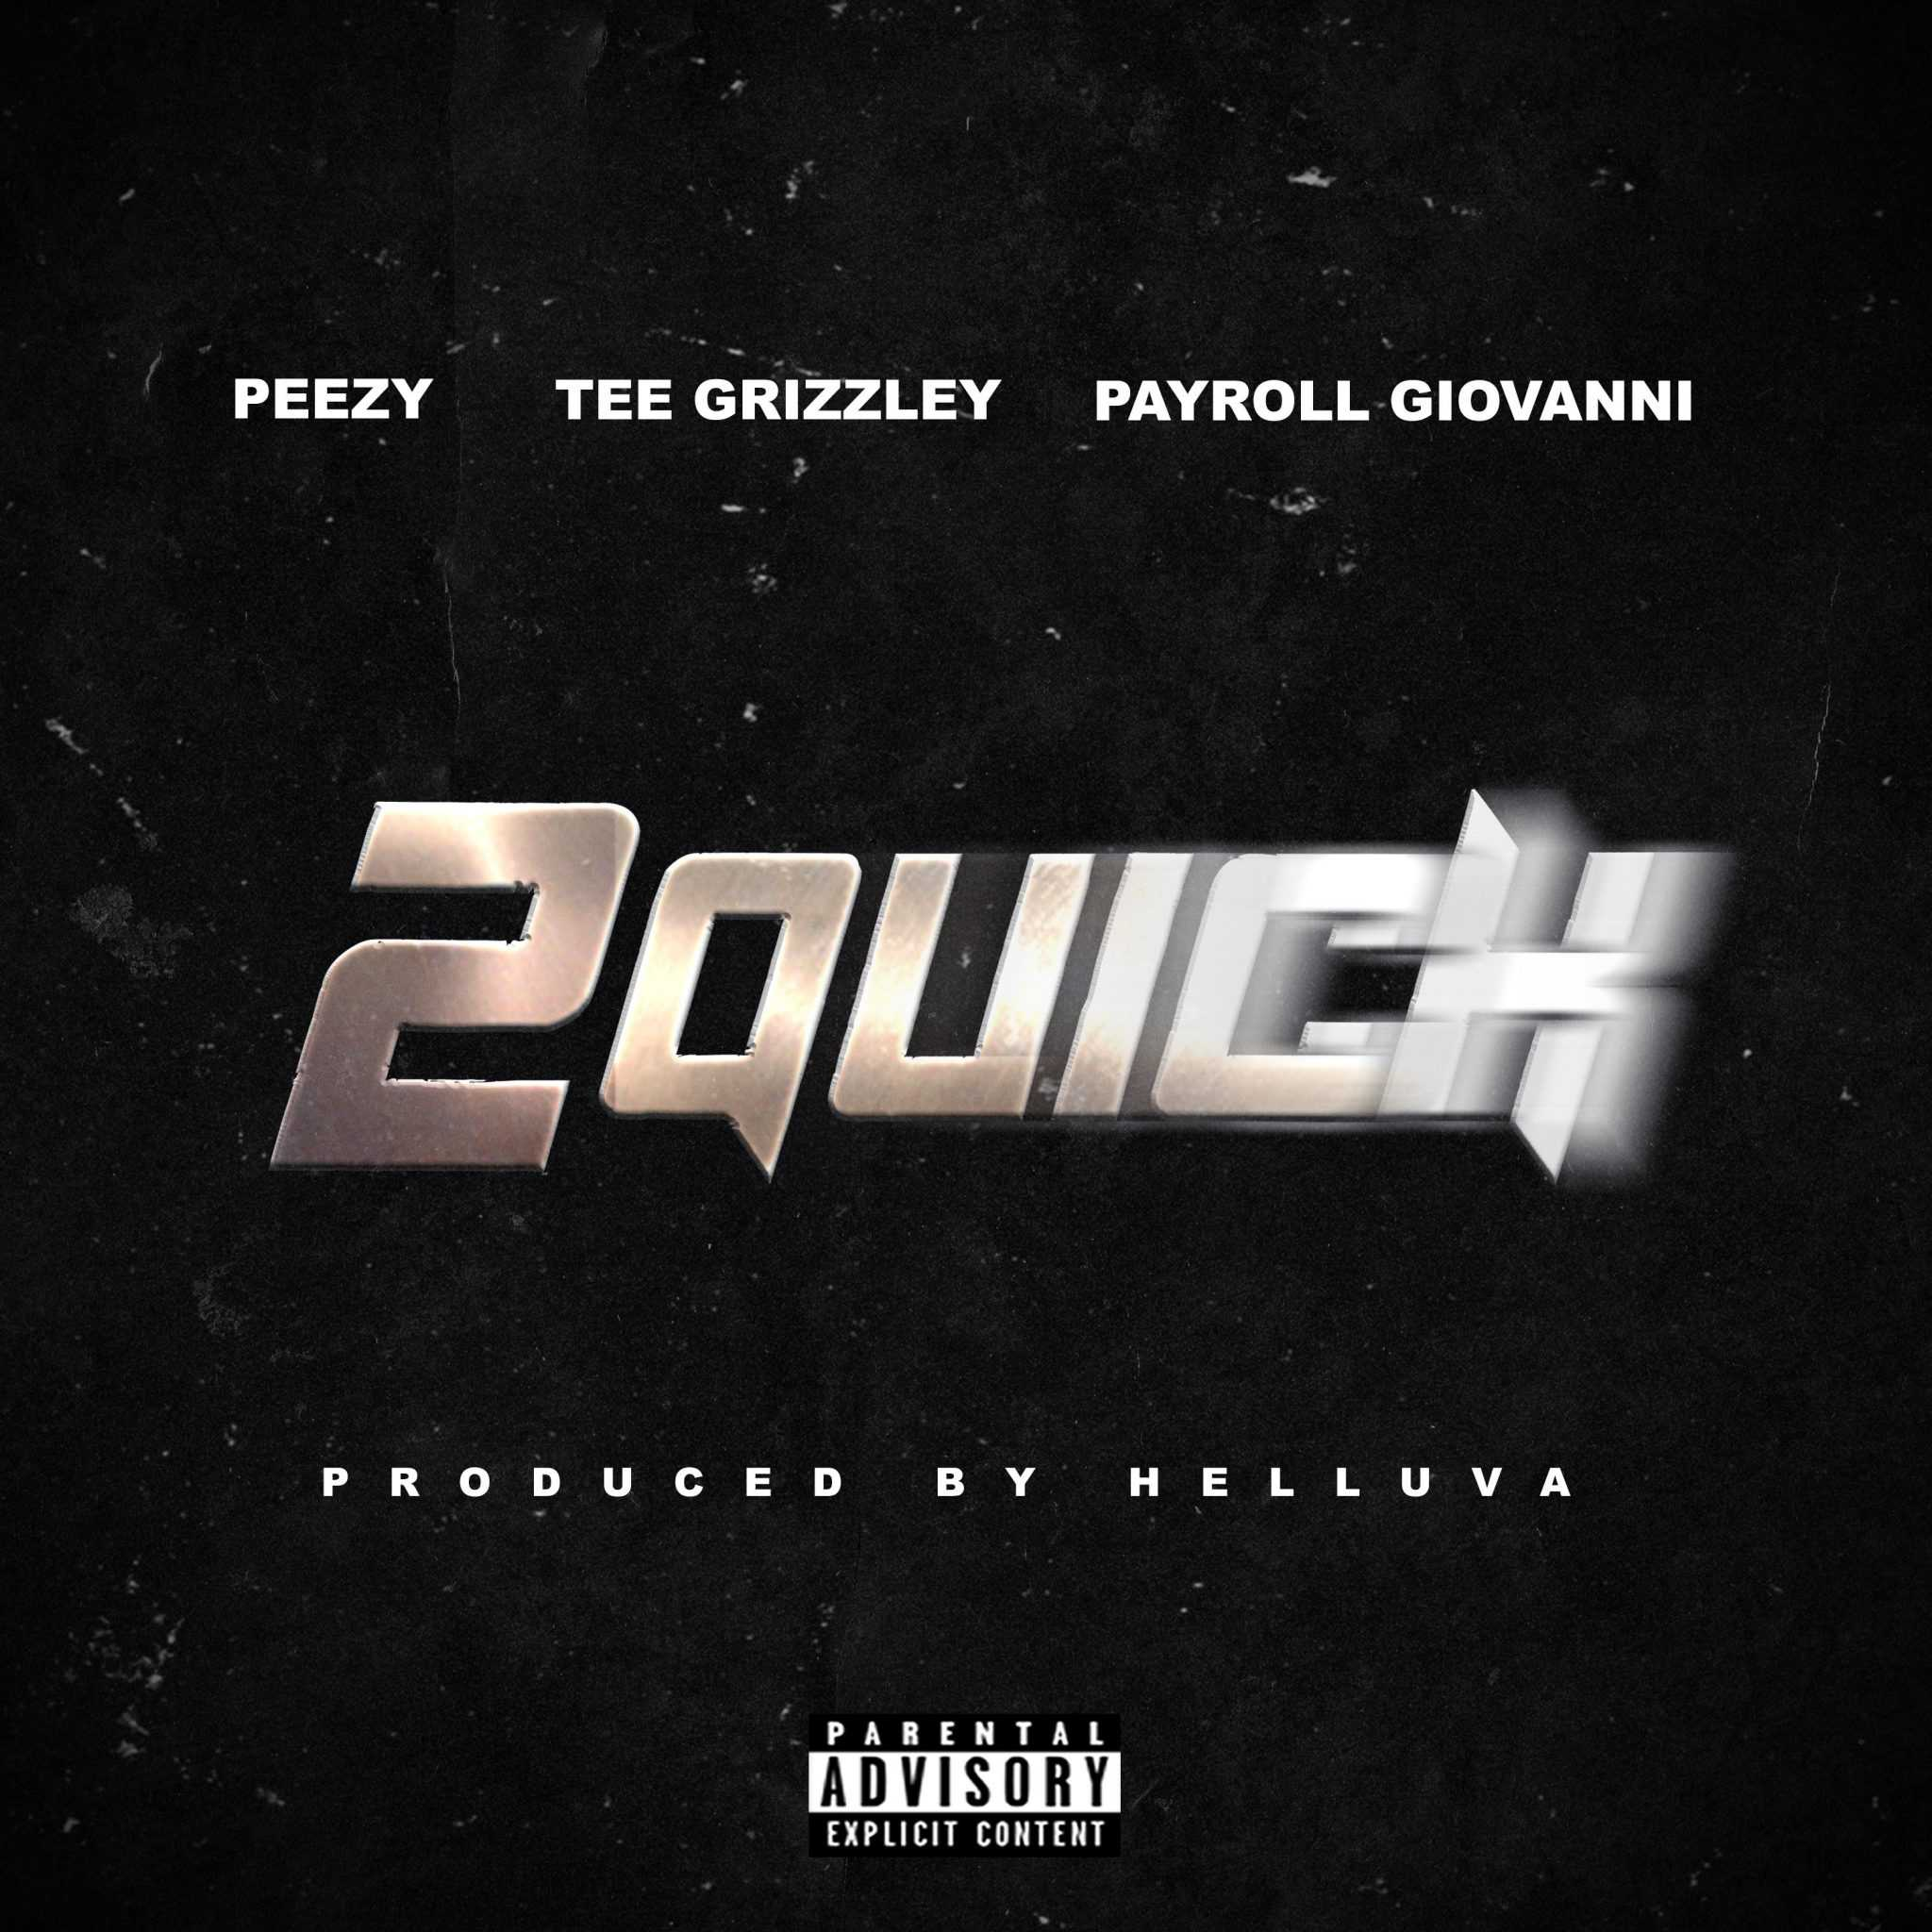 New Single: Peezy | 2 Quick (feat. Tee Grizzley & Payroll Giovanni) [Audio]